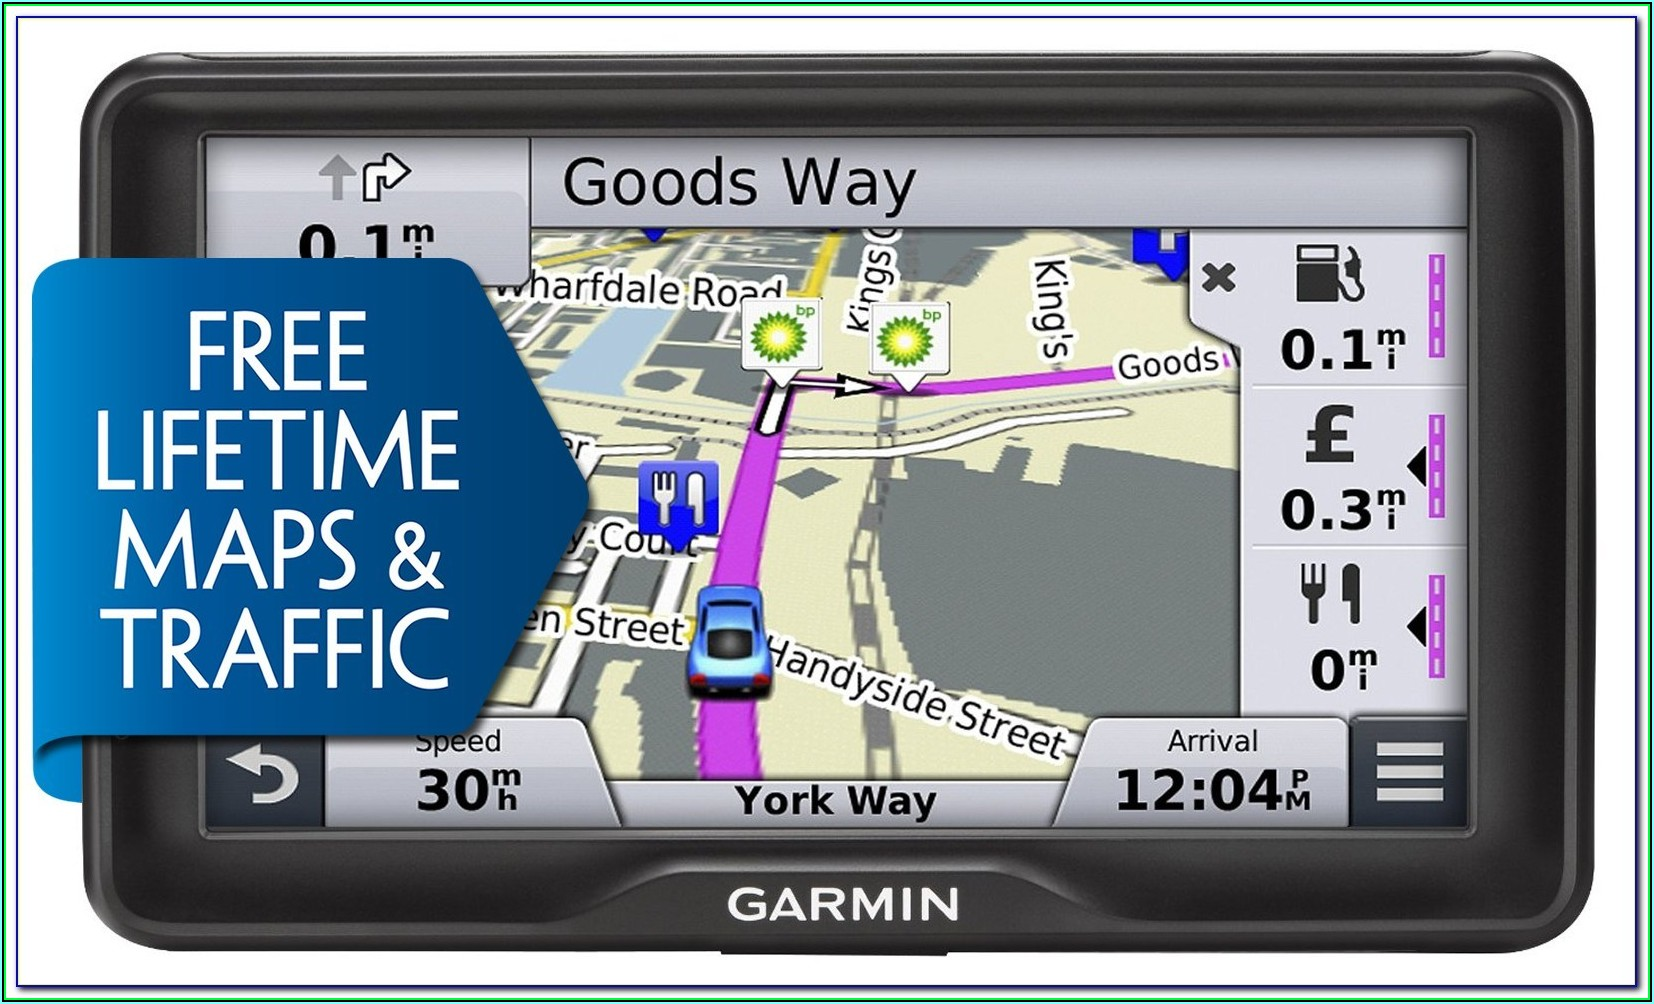 Garmin Nuvi 205w Updates Free Download